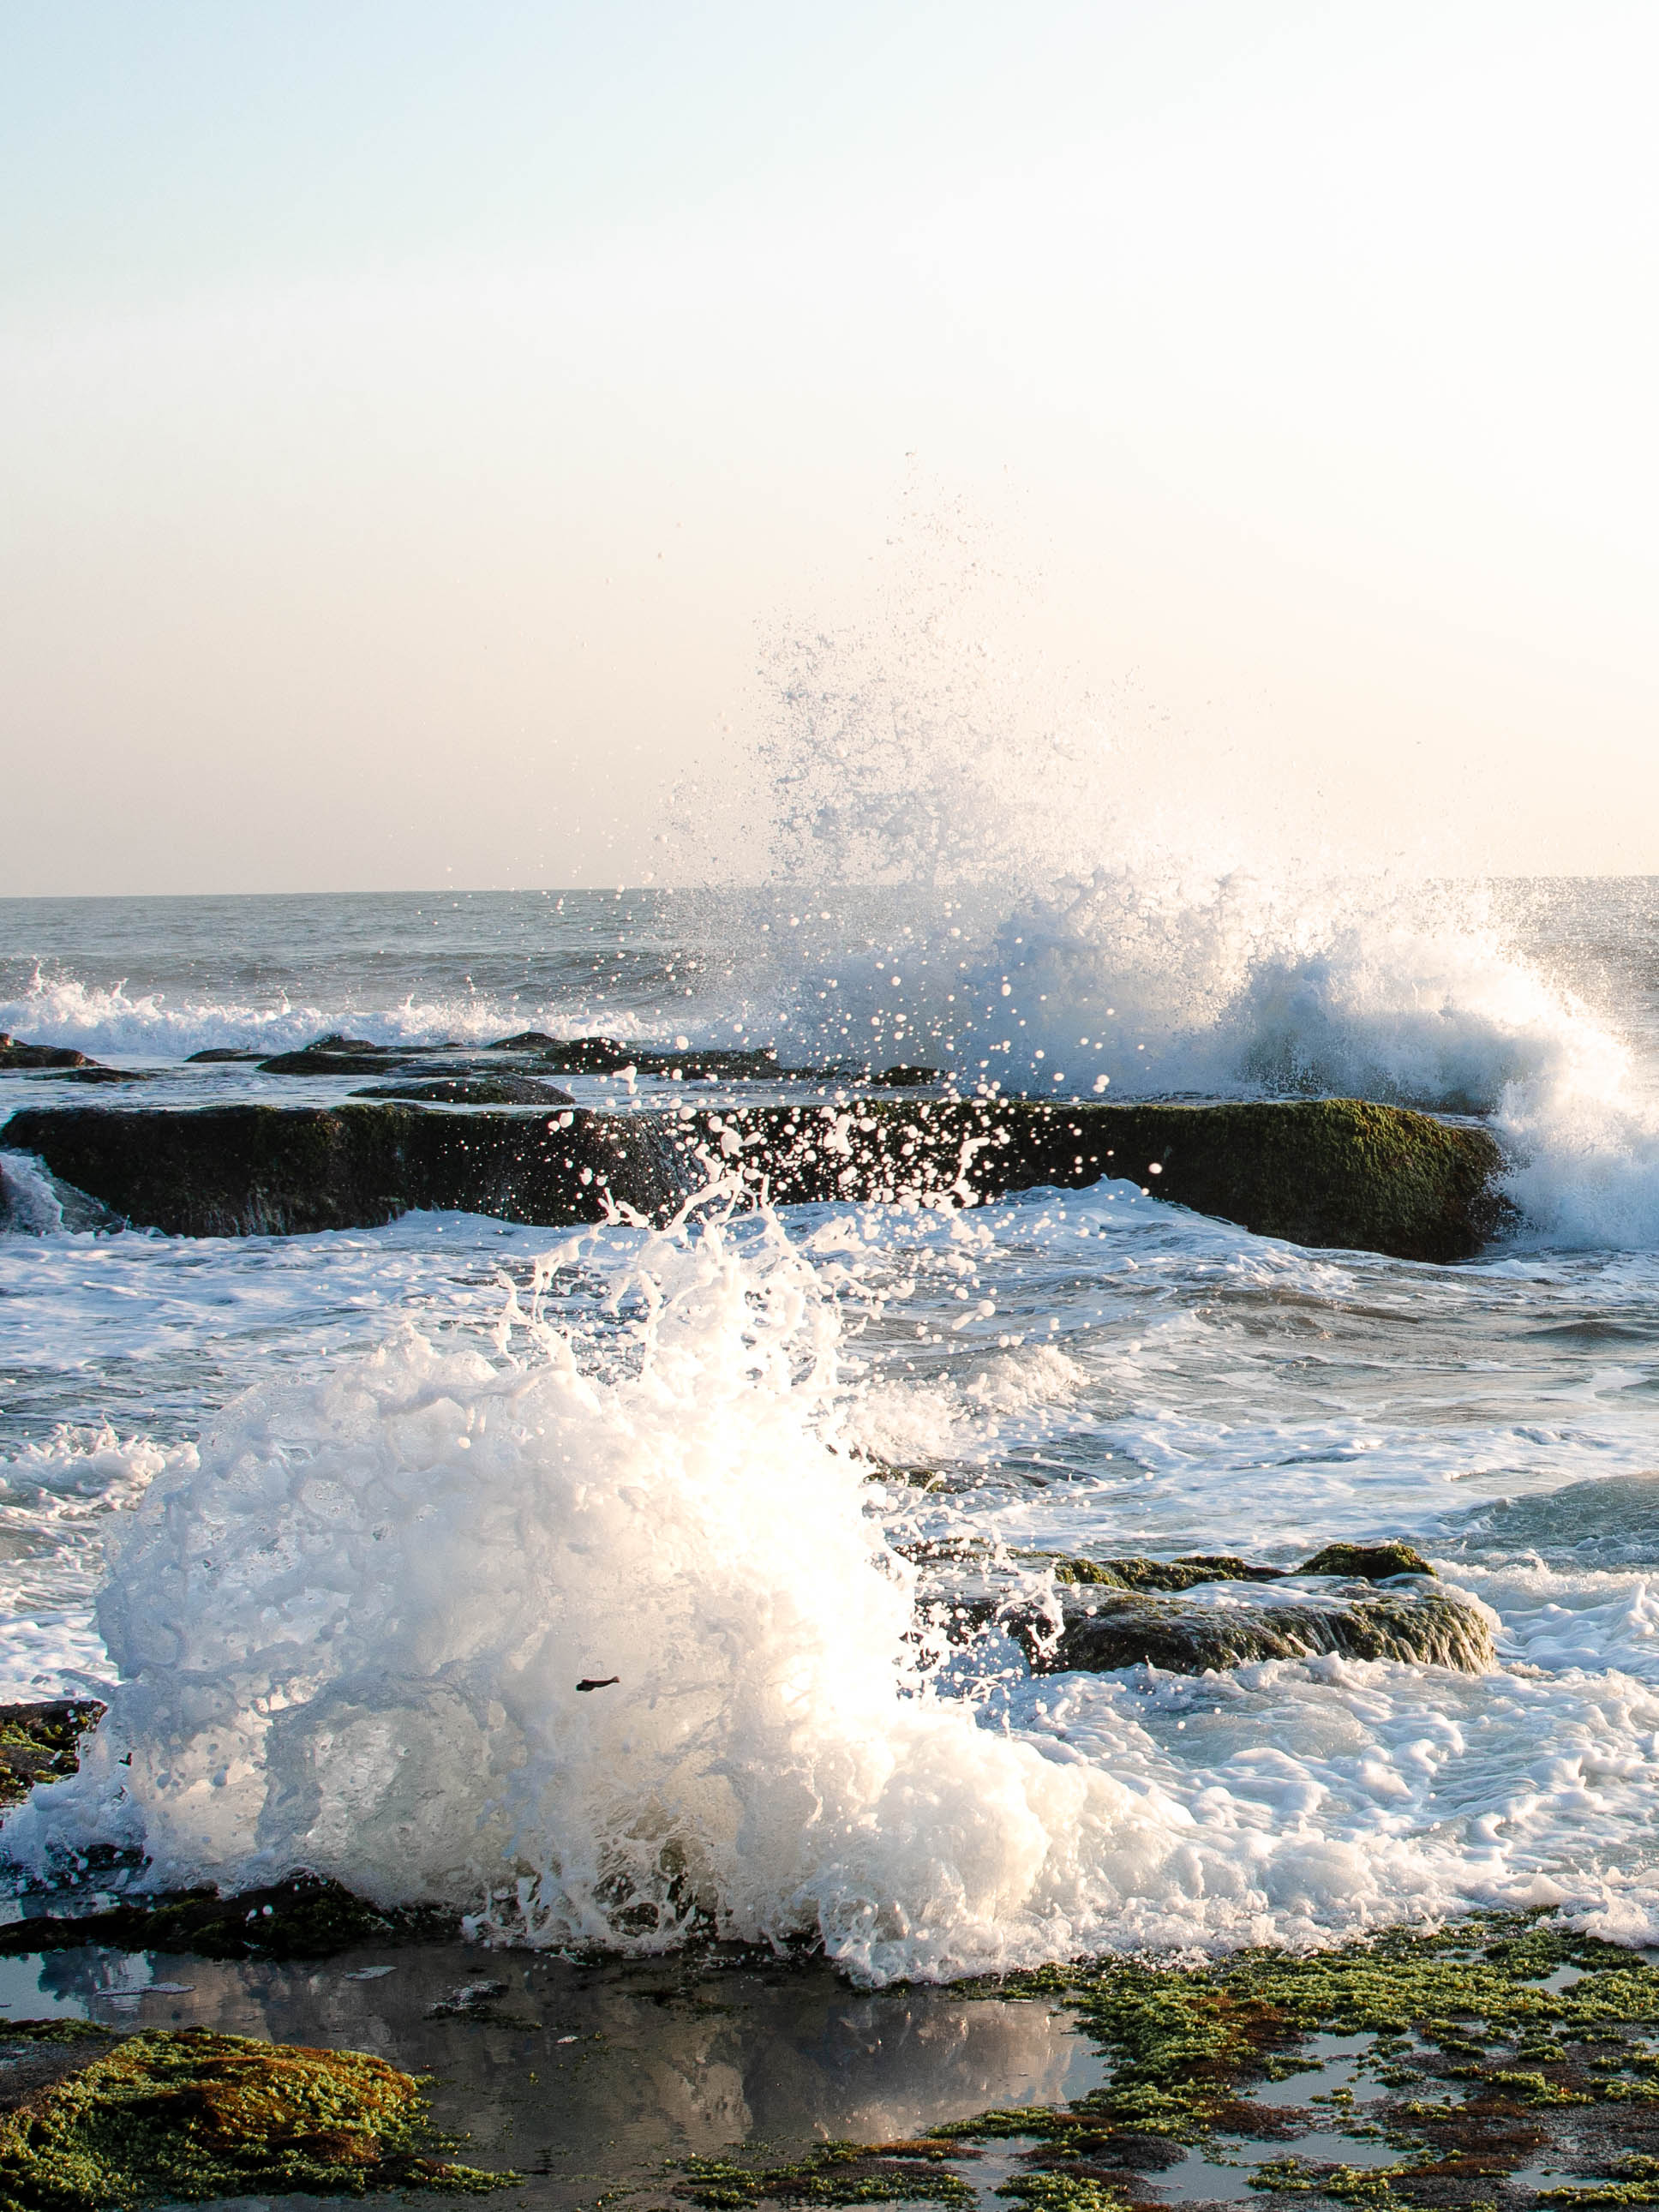 Visit Tanah Lot during low tide to get close up pictures of the waves